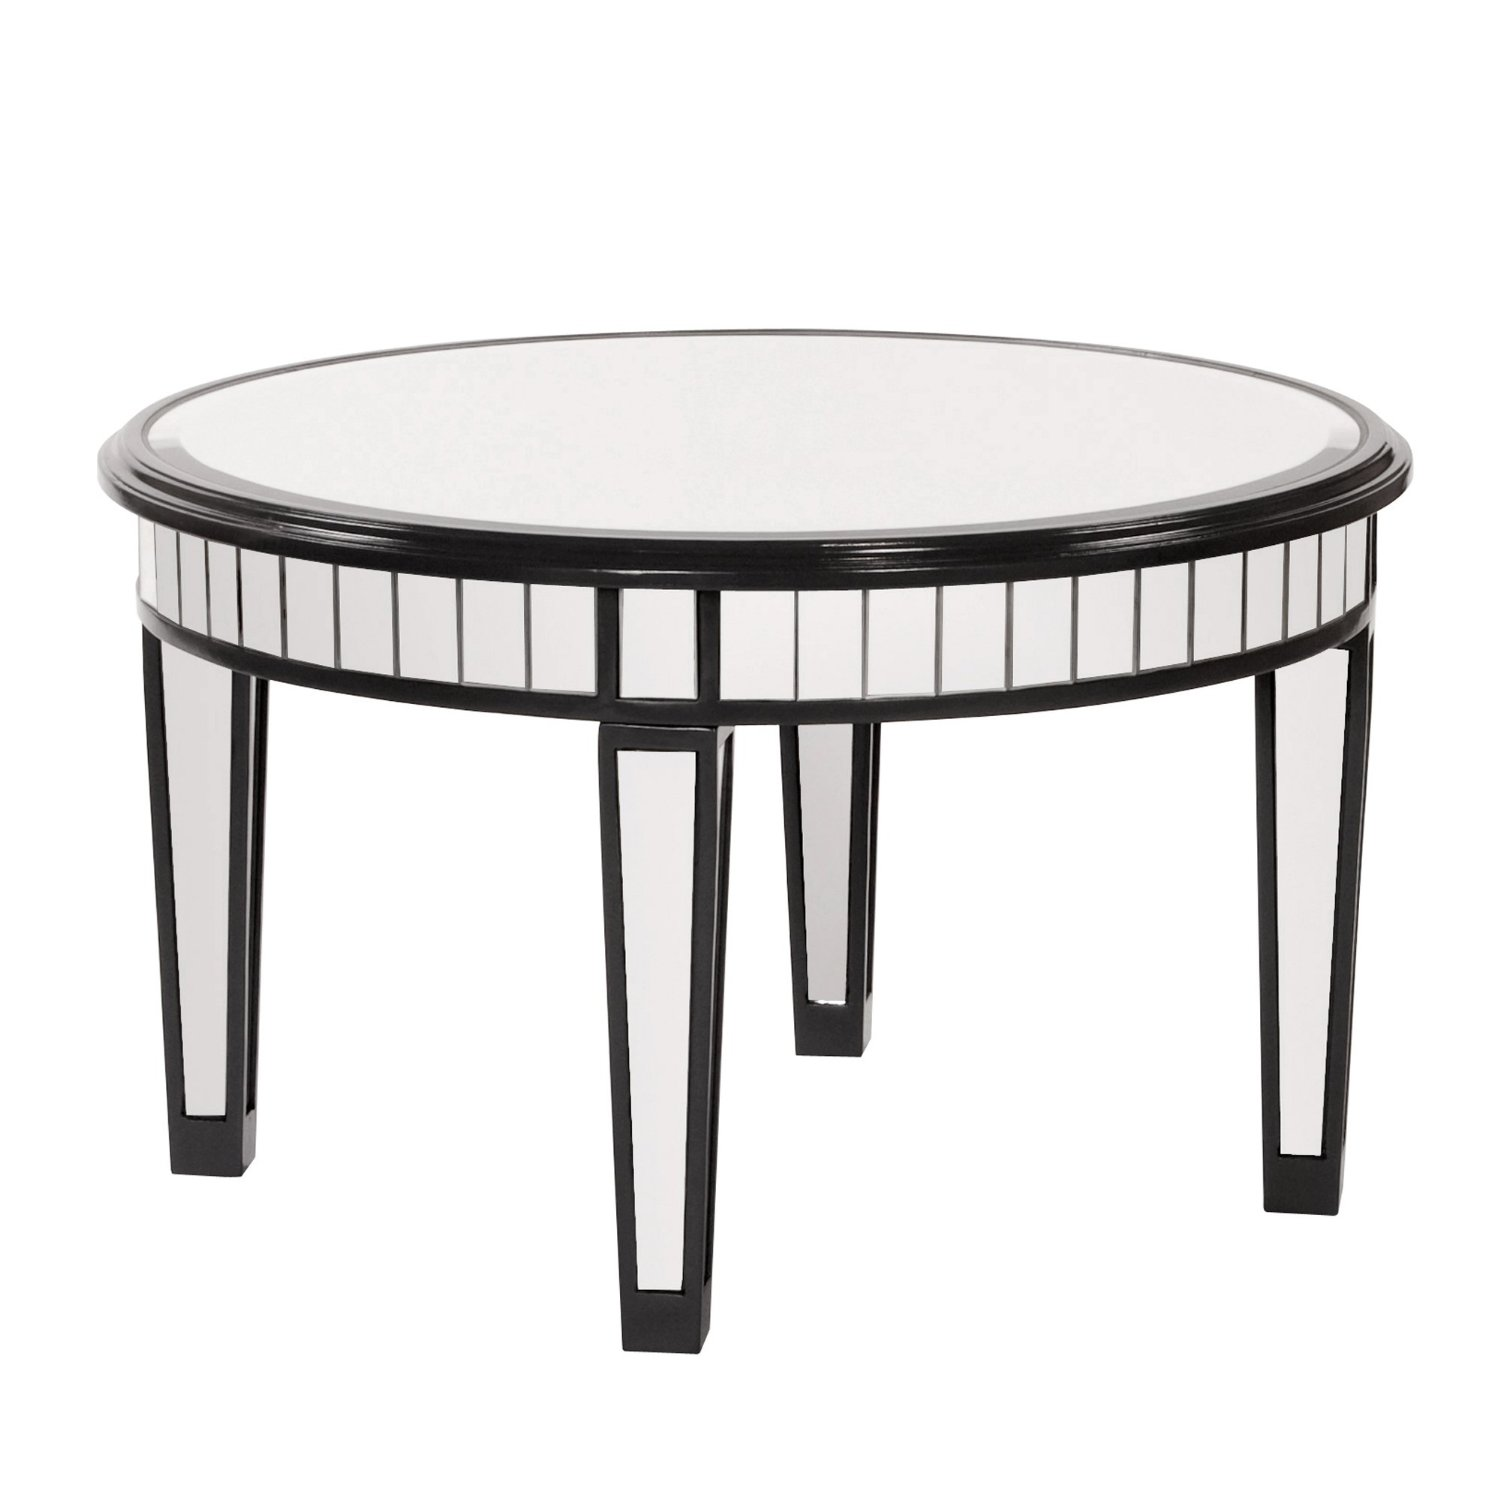 Round Mirrored Coffee Table Circle Mirrored Coffee Table Table Designs Amazon Mirrored Coffee Table Mirrored Coffee Table Sets (View 6 of 10)